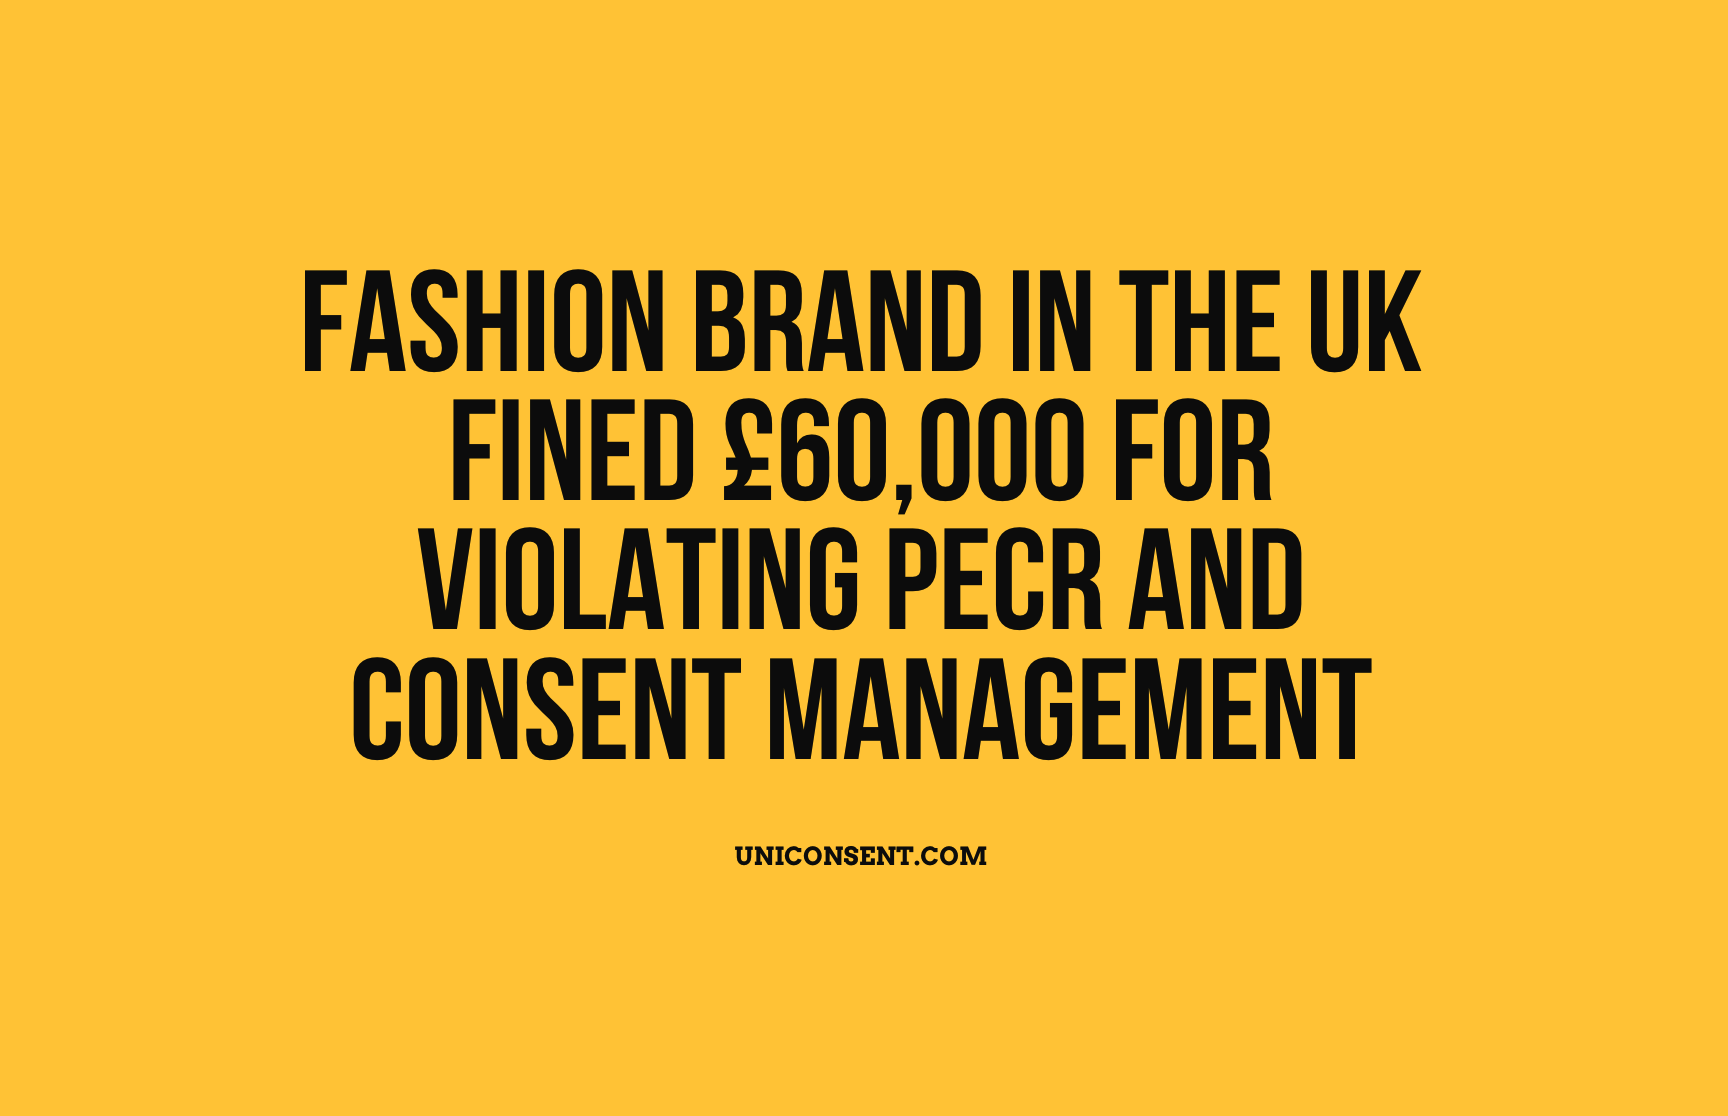 Fashion brand in the UK fined £60,000 for violating PECR and Consent Management